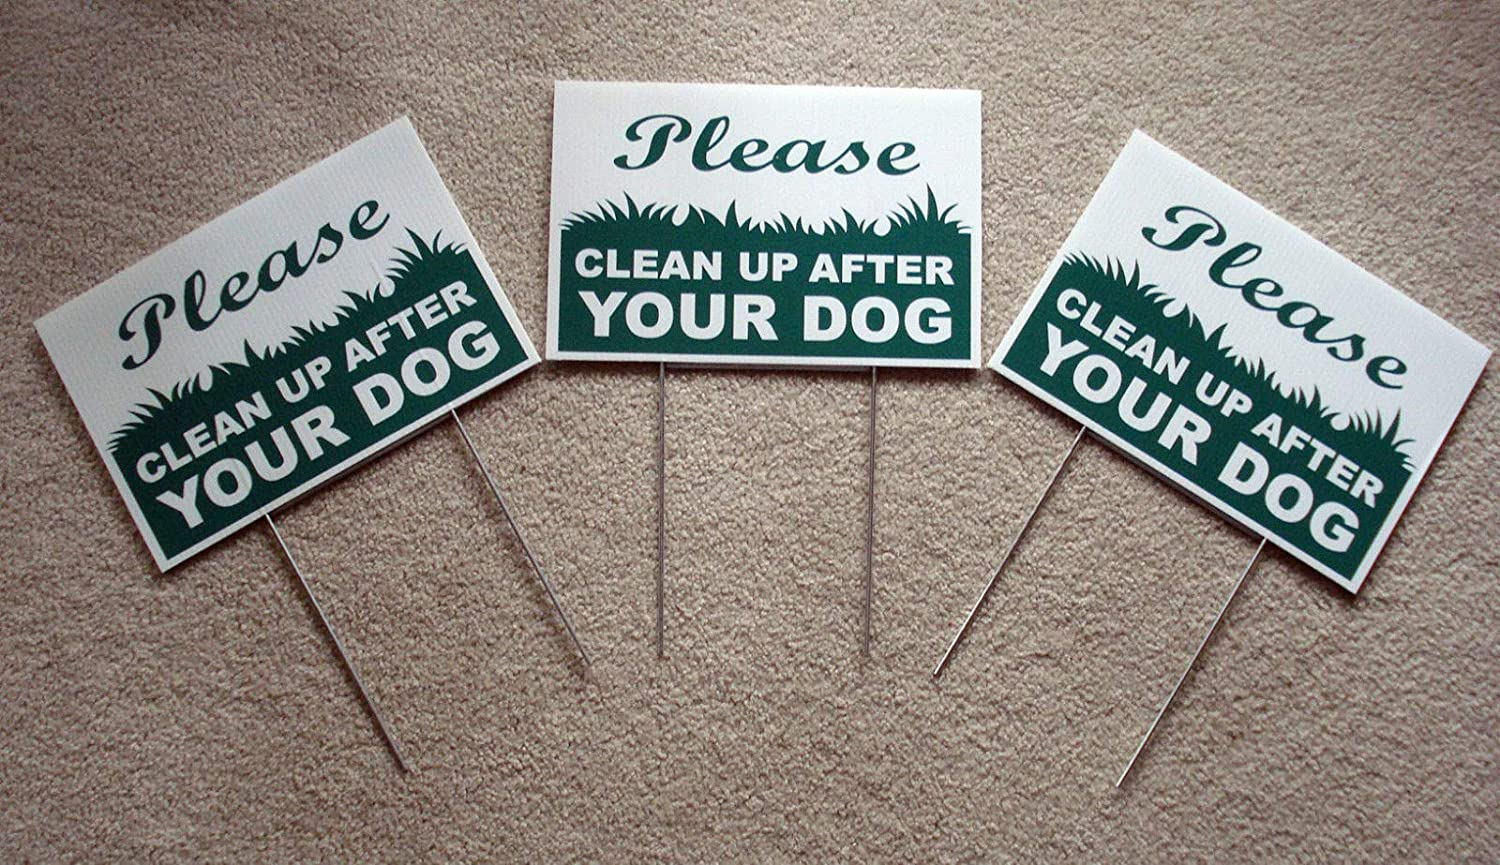 Peter Select 3 Please Clean UP After Your Dog 8''X12'' Plastic Coroplast Signs with Stake New Funny Retro Vintage Business Nostalgic Signs